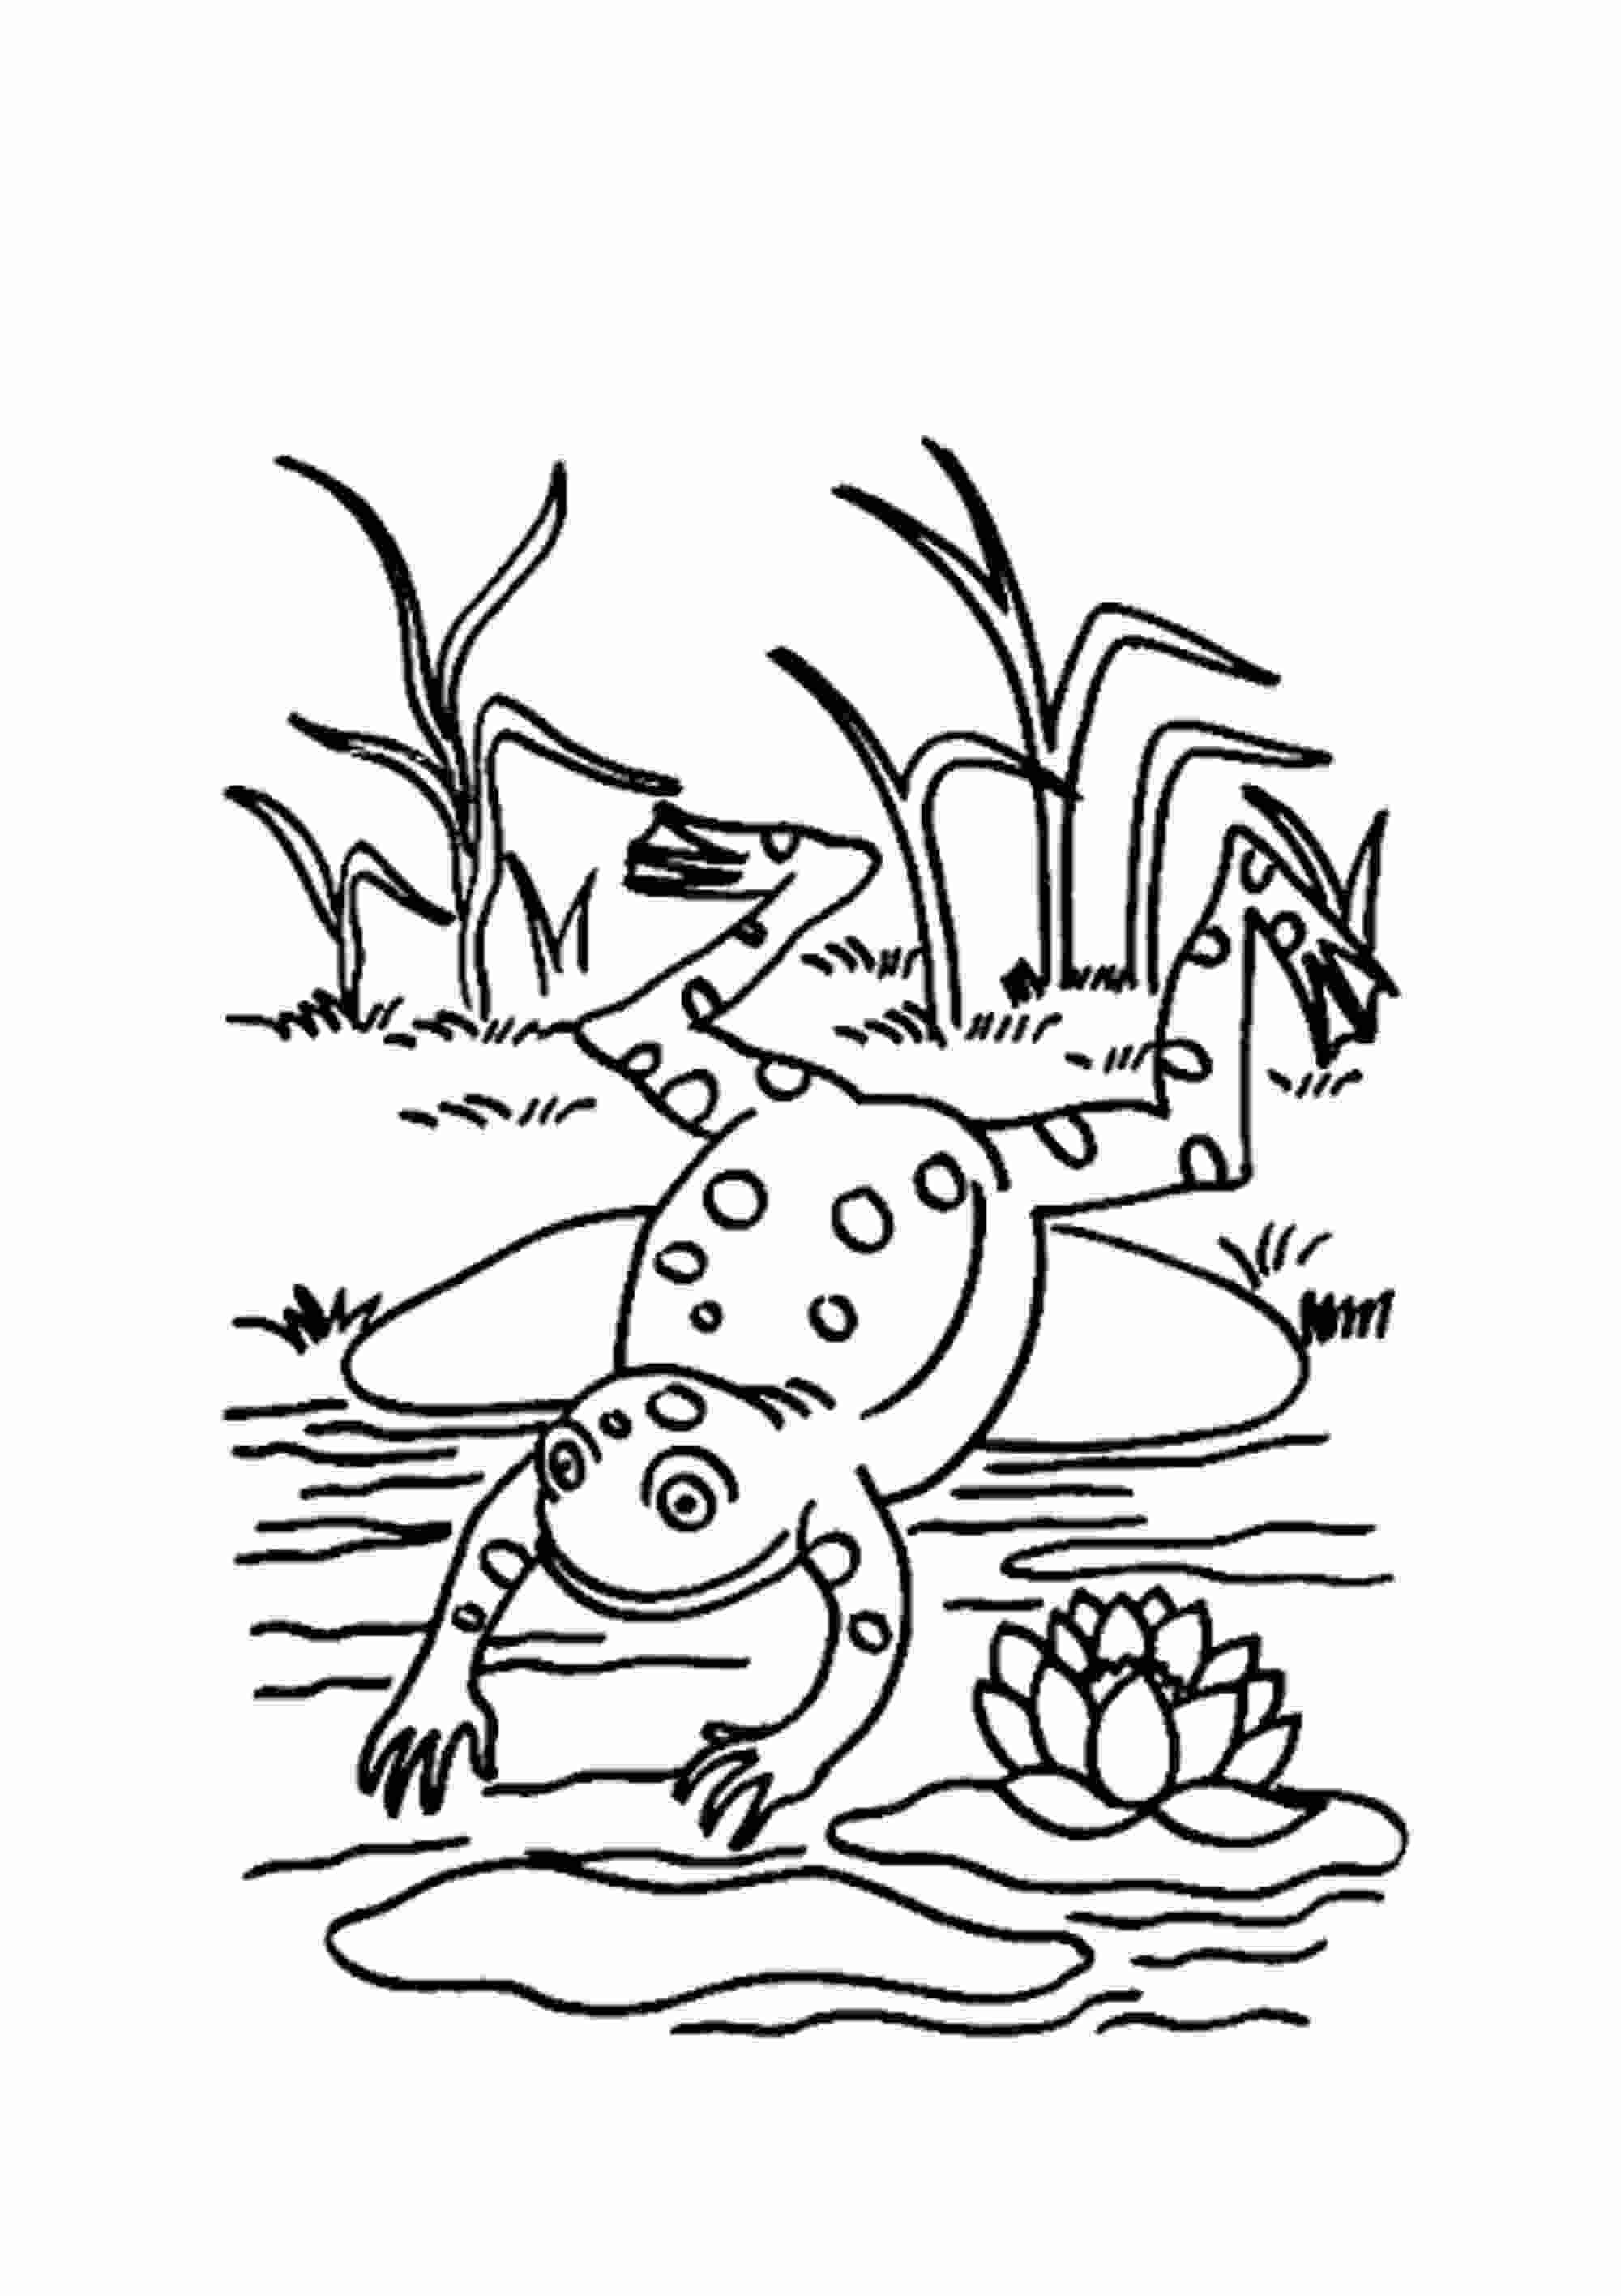 Print & Download - Frog Coloring Pages Theme for Kids